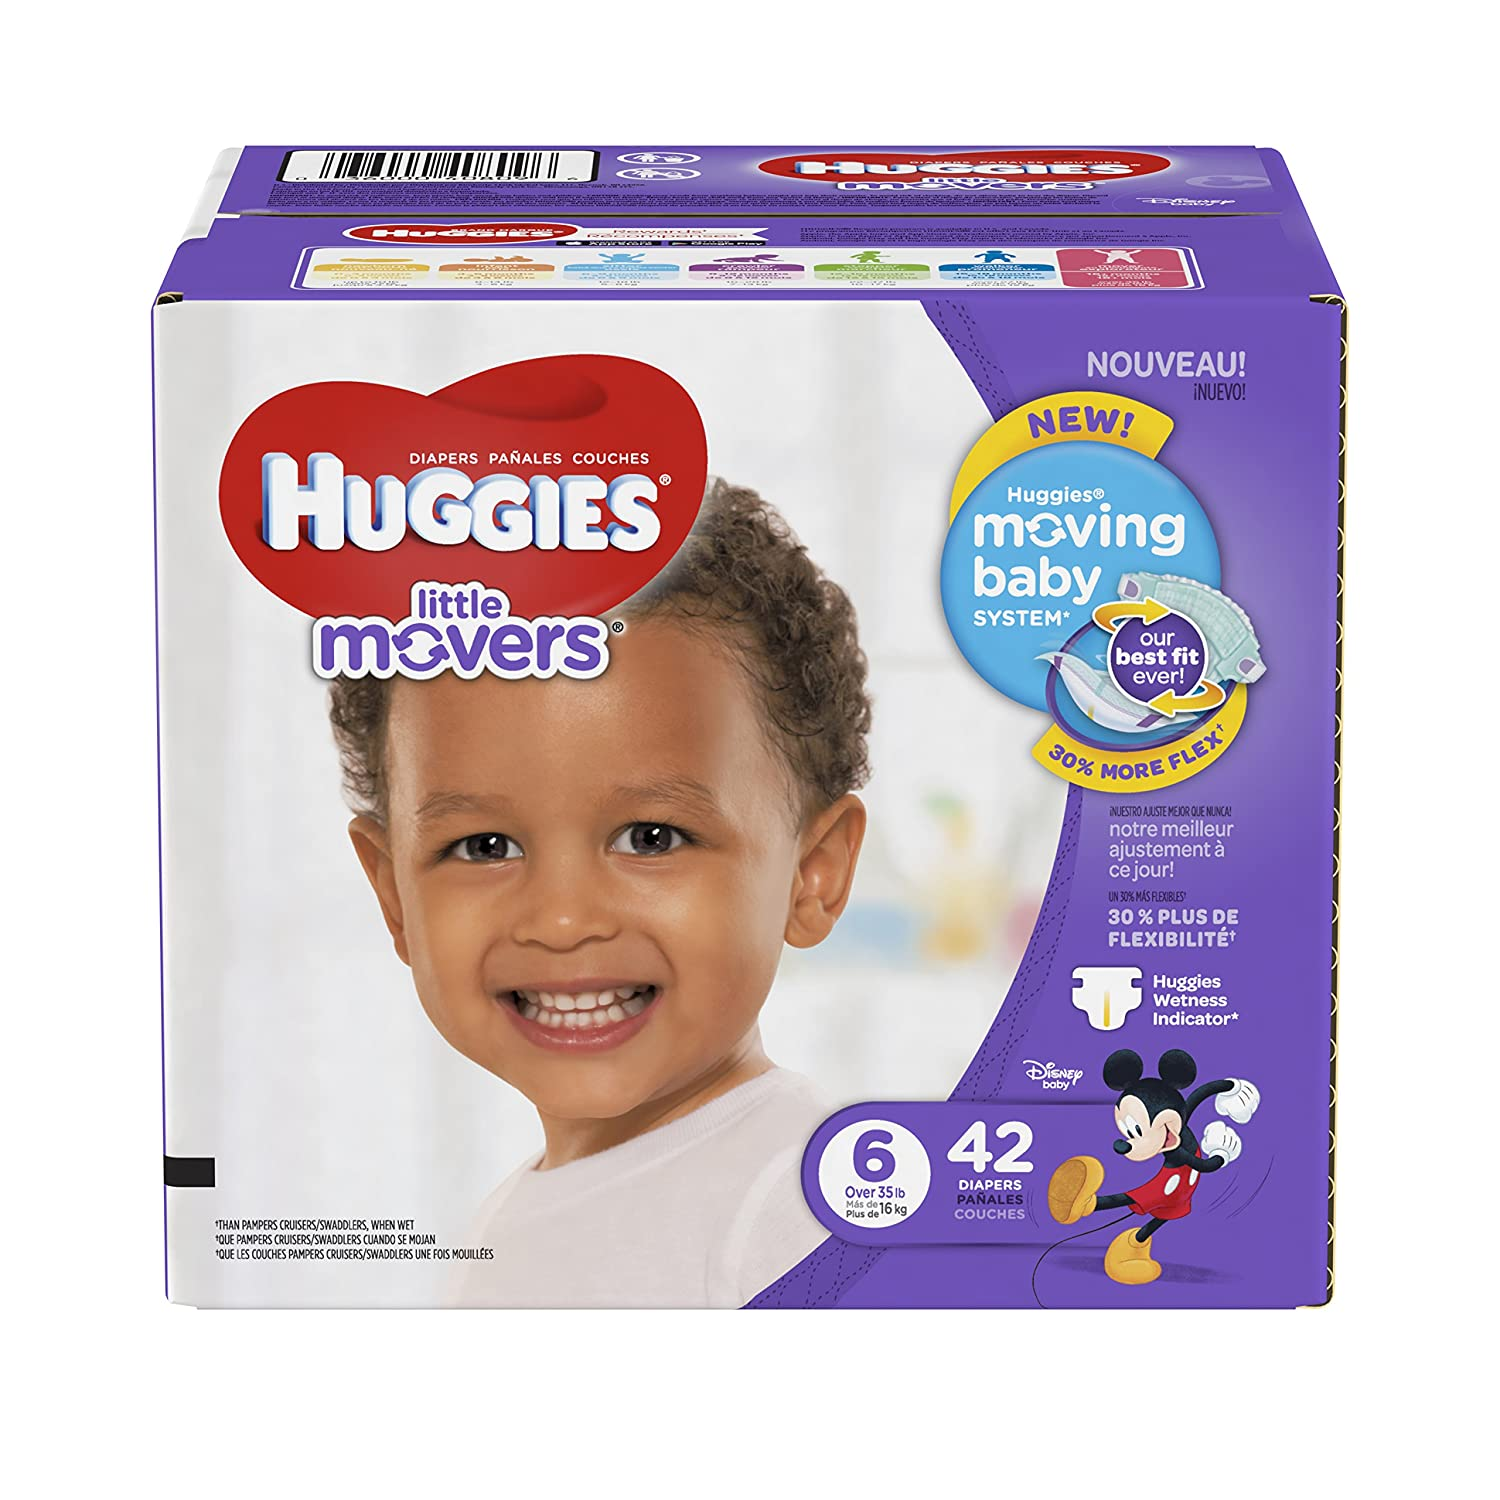 Amazon.com: HUGGIES Little Movers Diapers, Size 6, 42 Count (Packaging May Vary): Prime Pantry